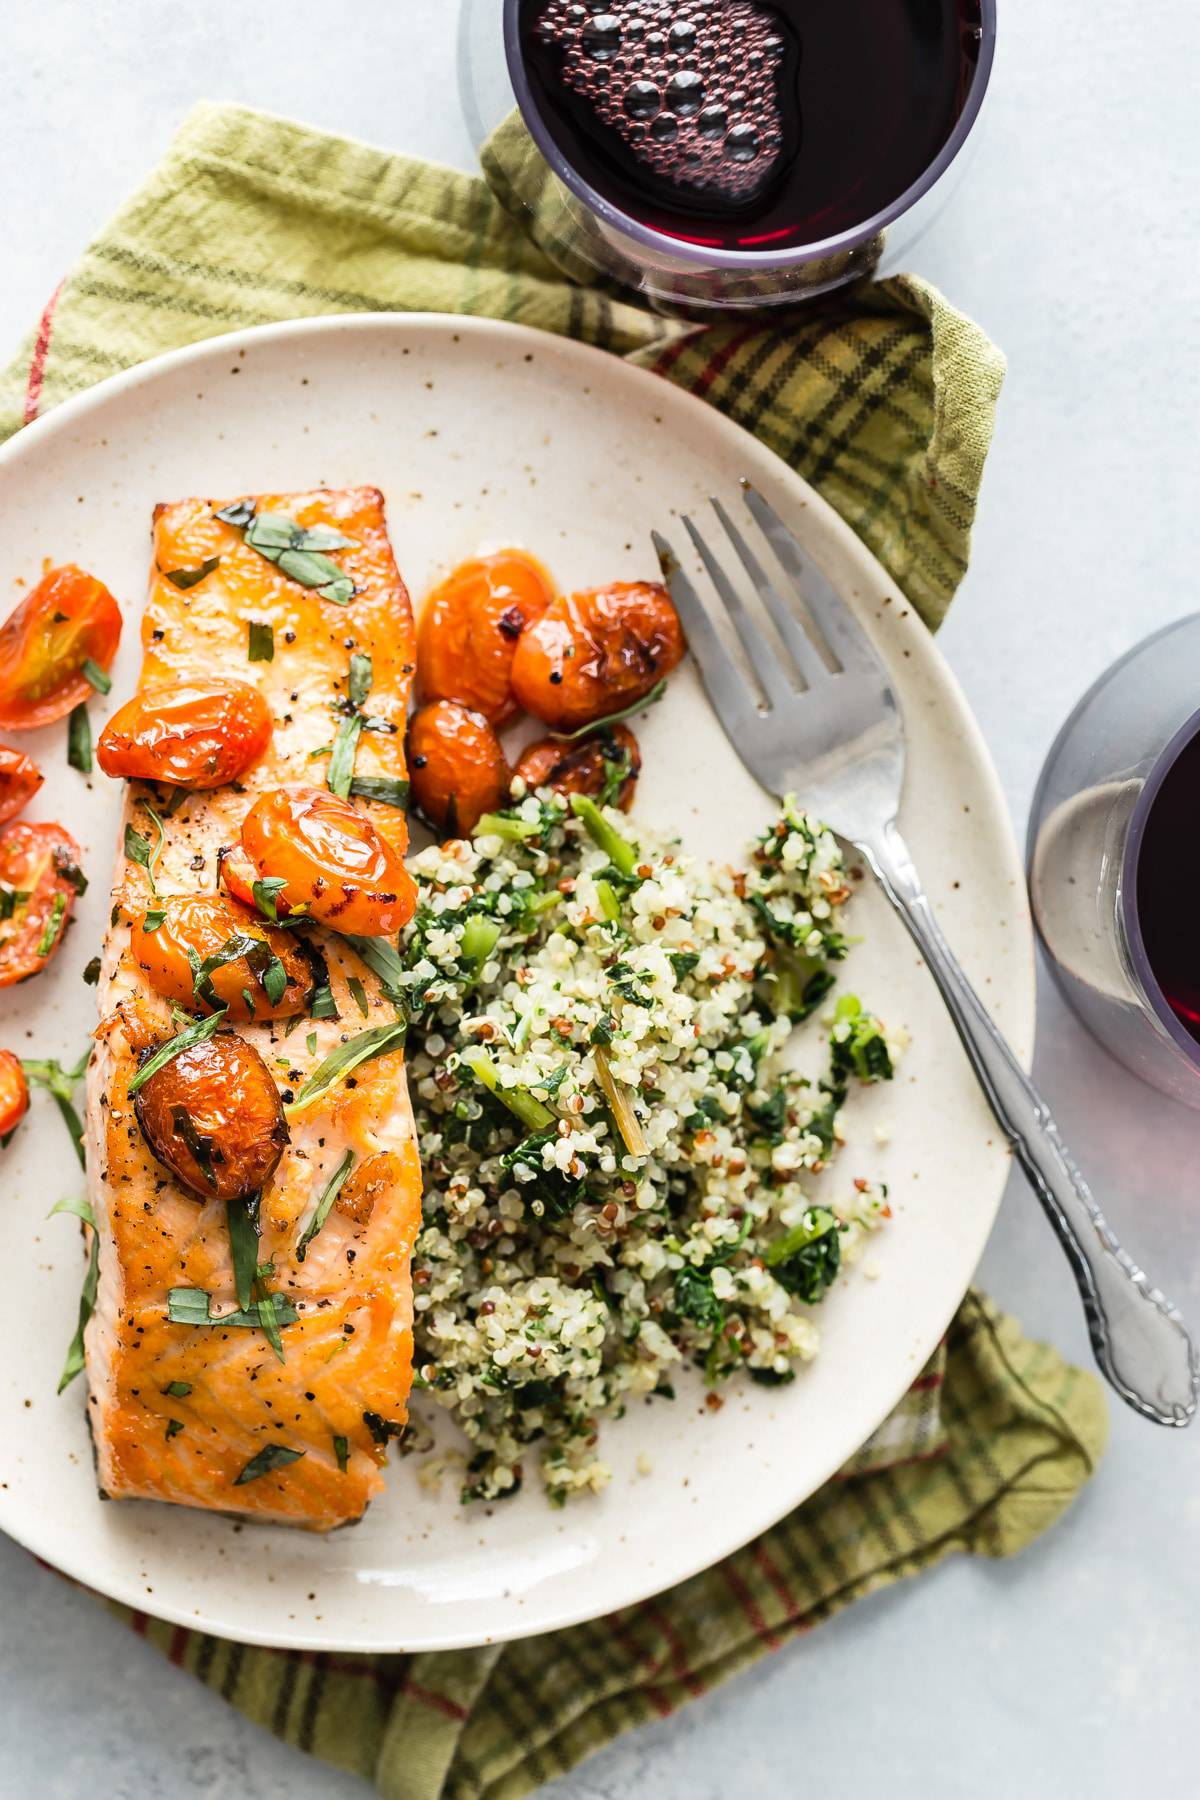 seared salmon on a plate with cherry tomatoes